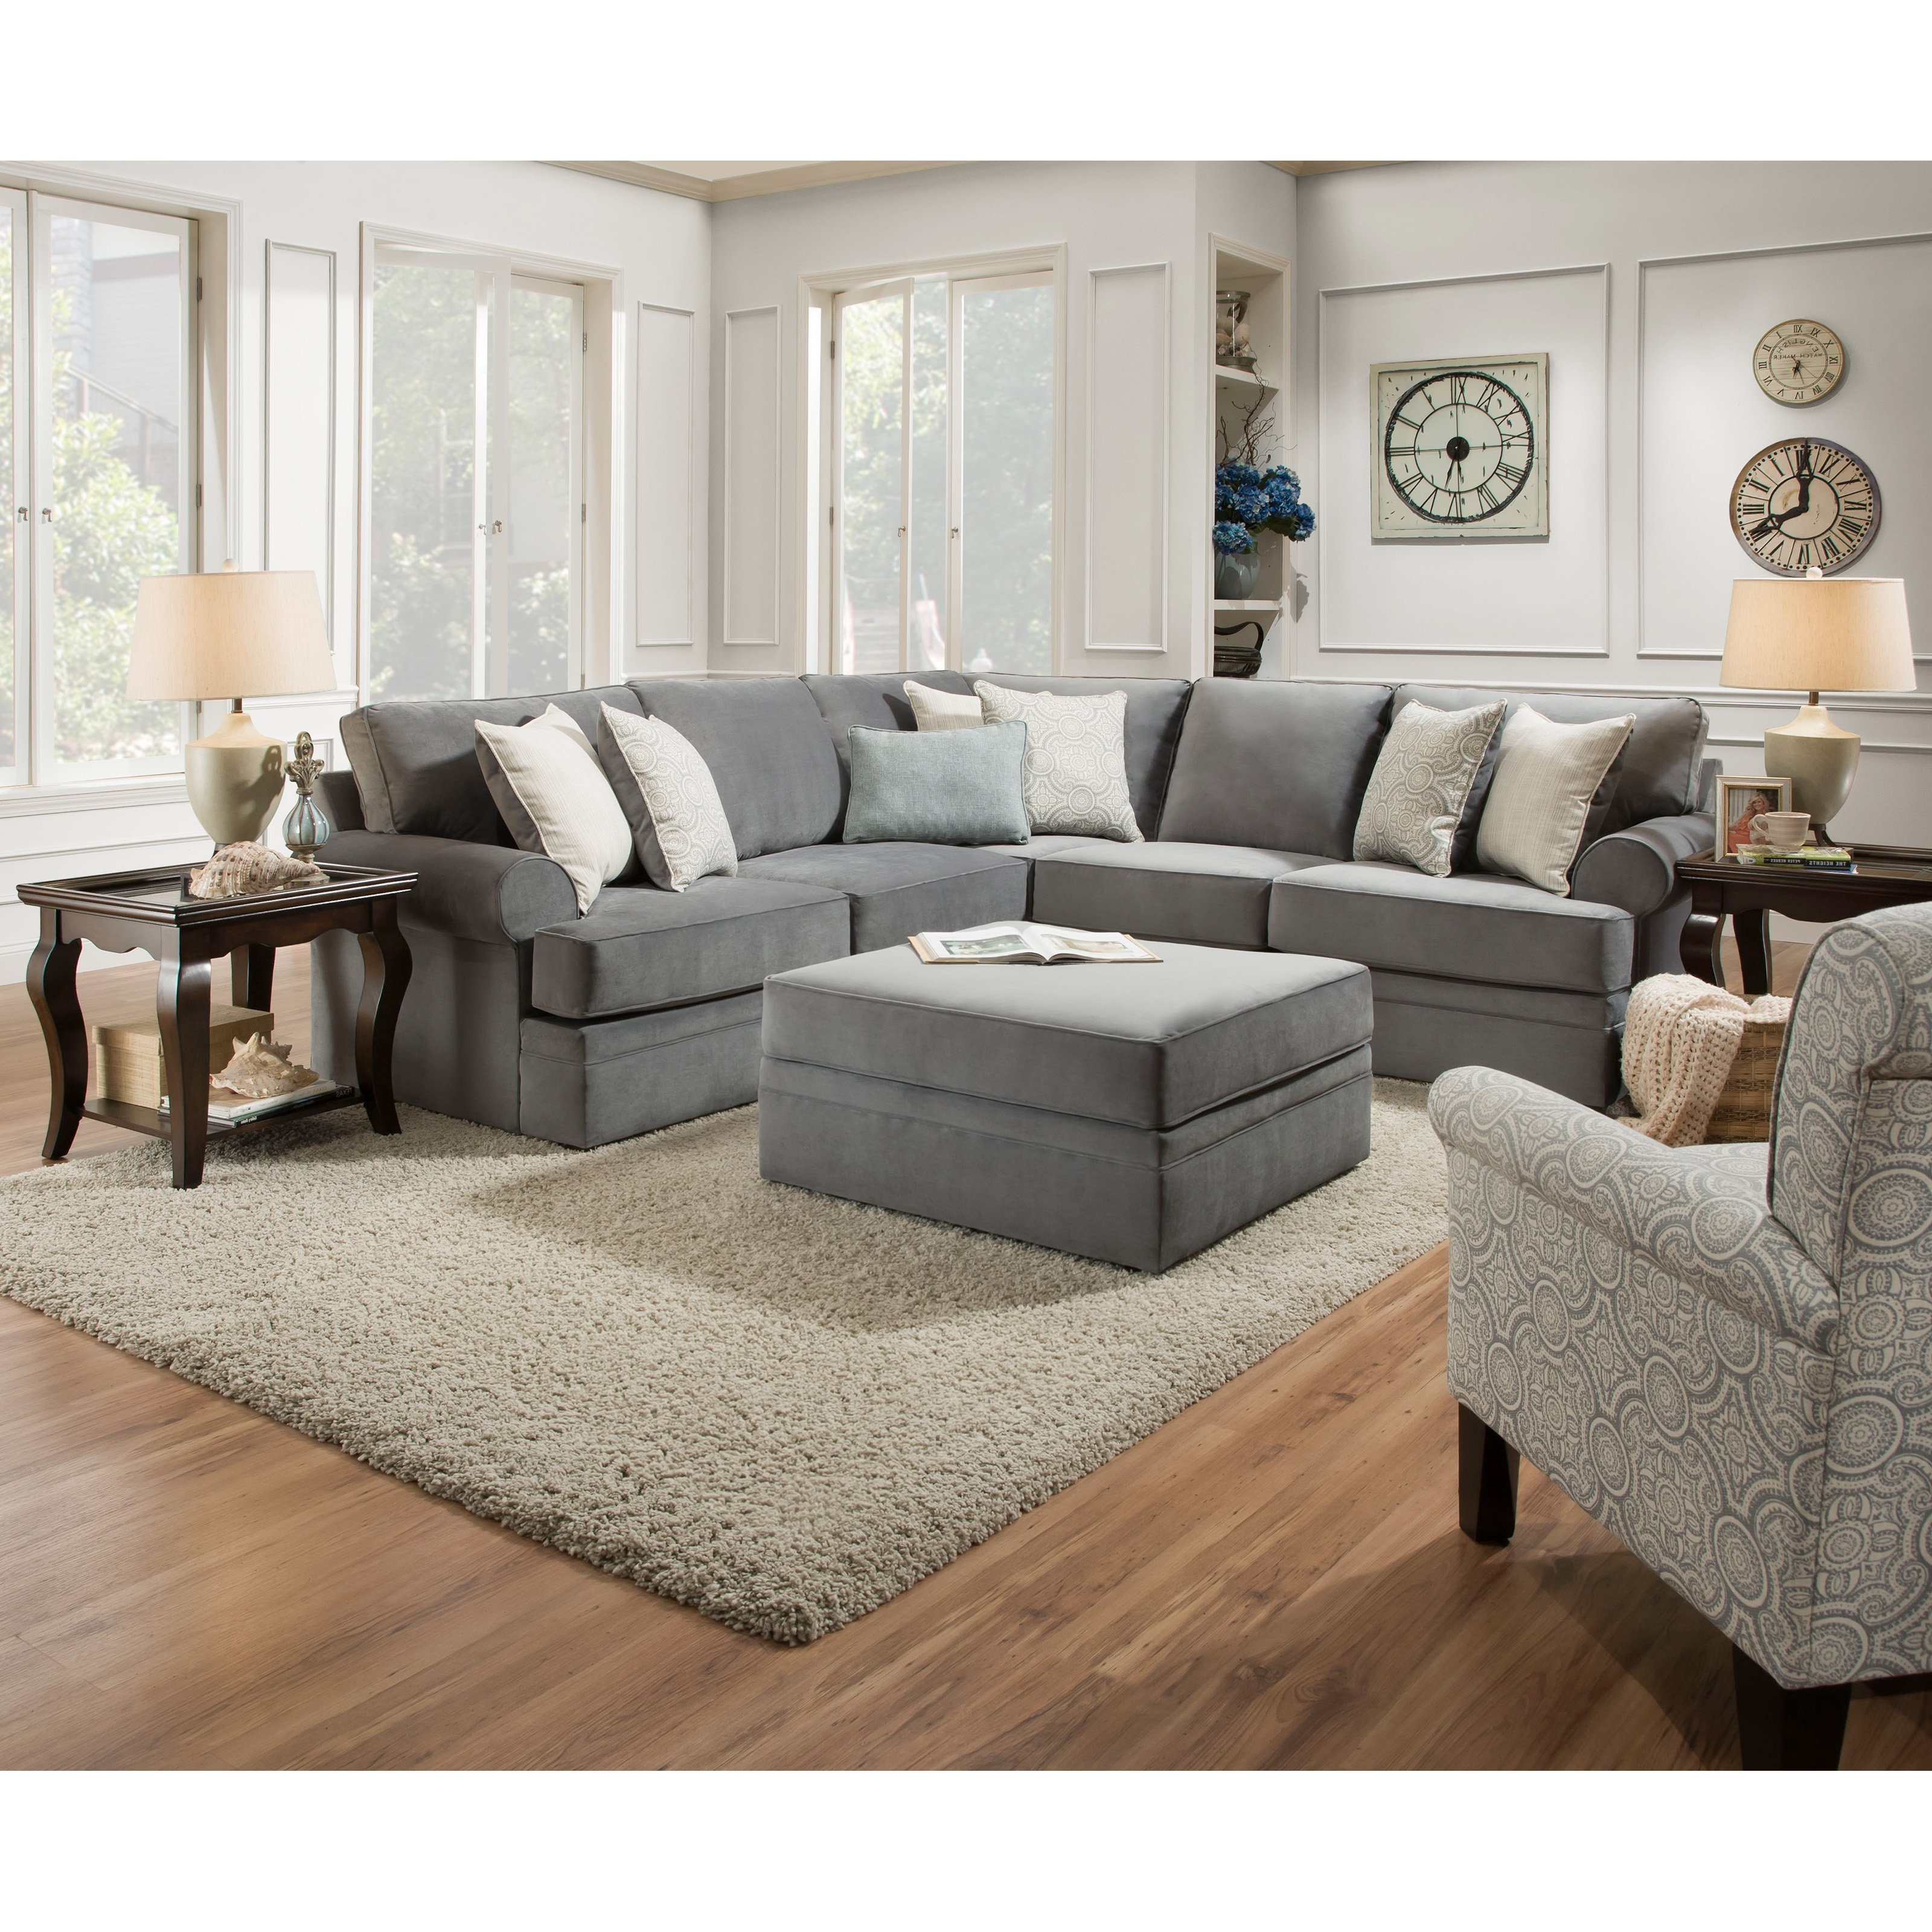 Hayneedle Intended For Simmons Sectional Sofas (View 1 of 15)